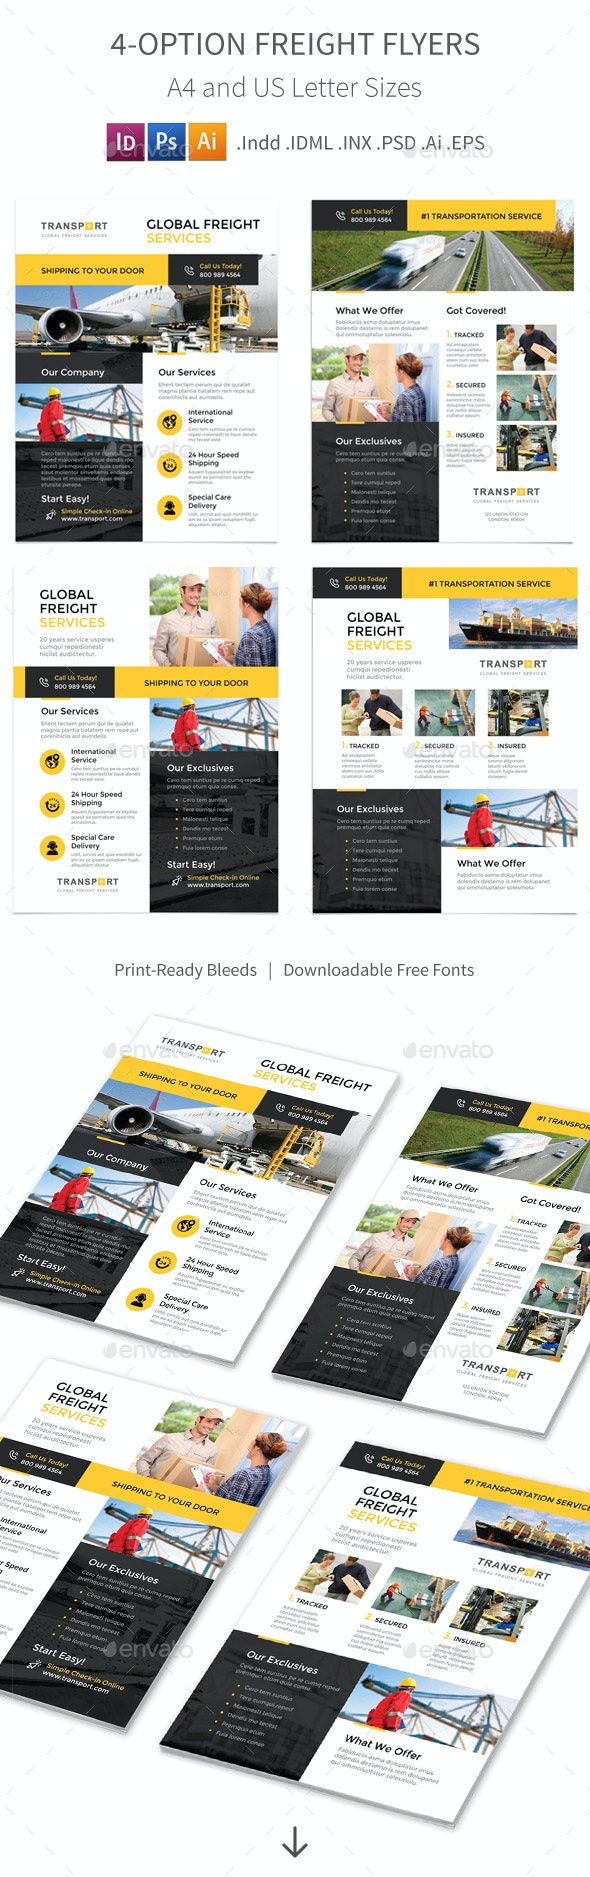 Freight Flyers – 4 Options - Corporate Flyers